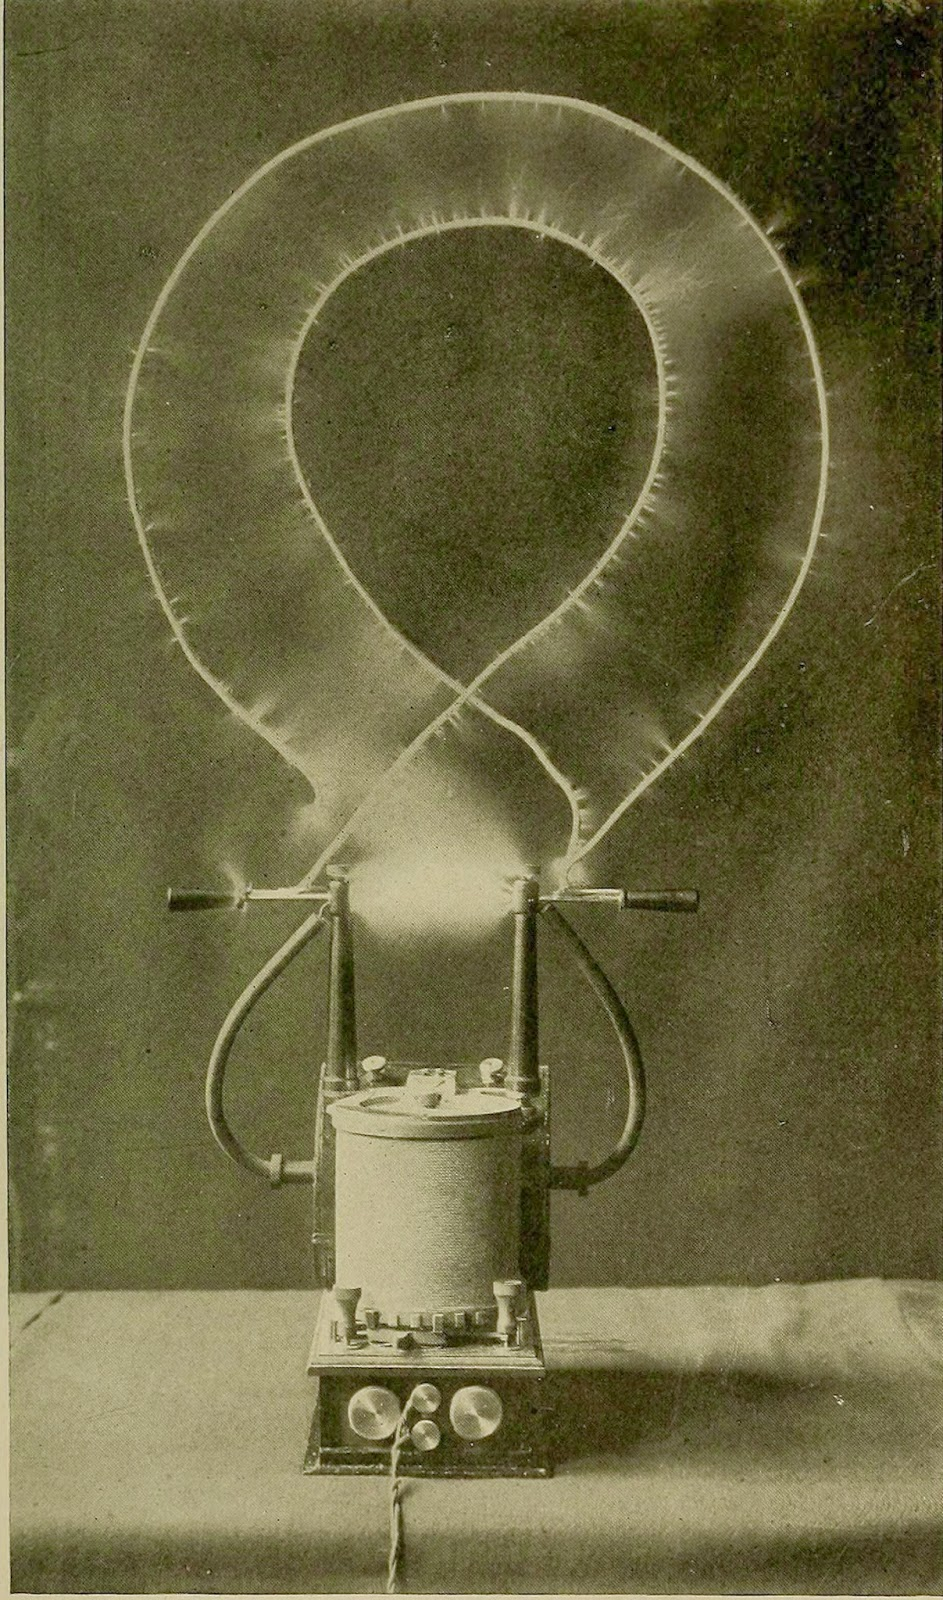 electric currents review This association gave rise to the english words electric and electricity,  of an electric current and its associated magnetic currents electric potential.